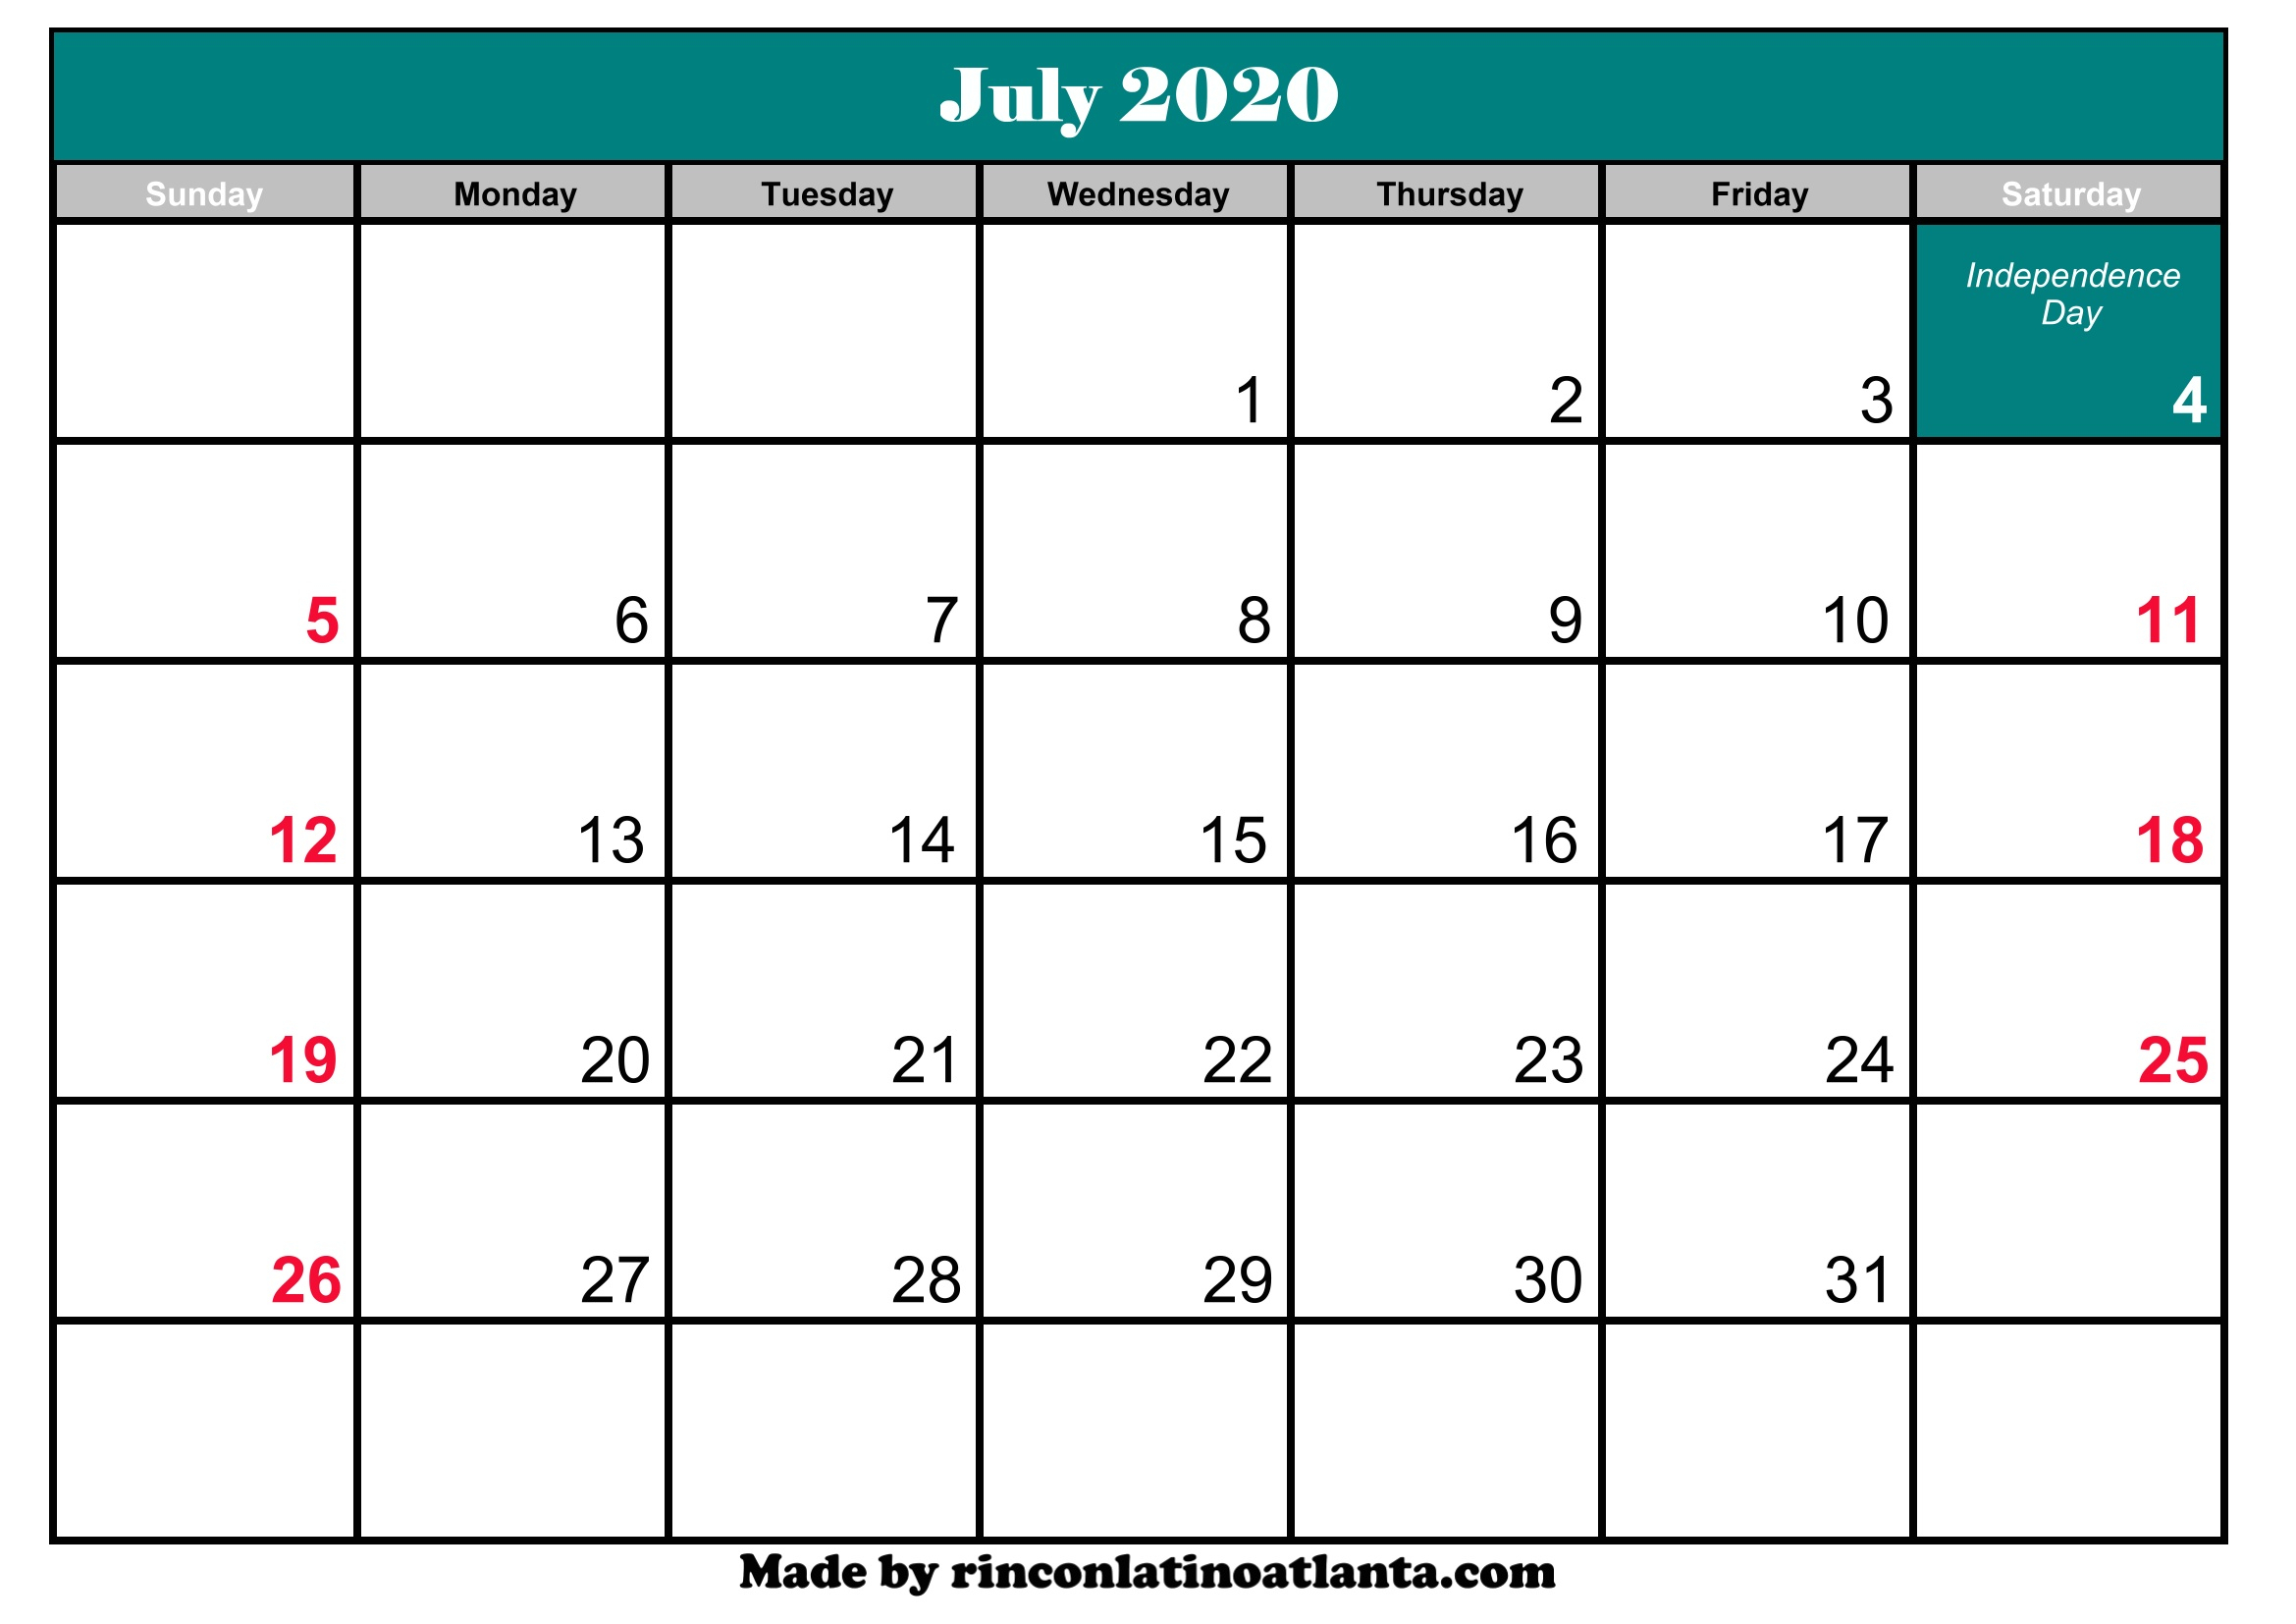 July 2020 Calendar Printable With Holidays | Calendar